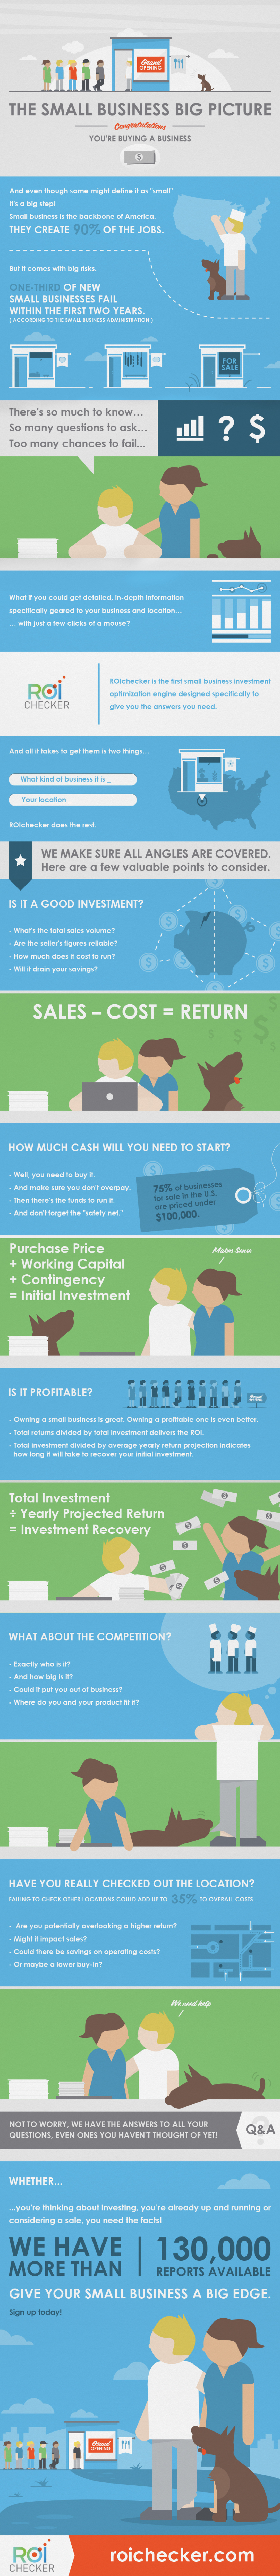 The Small Business Big Picture  Infographic